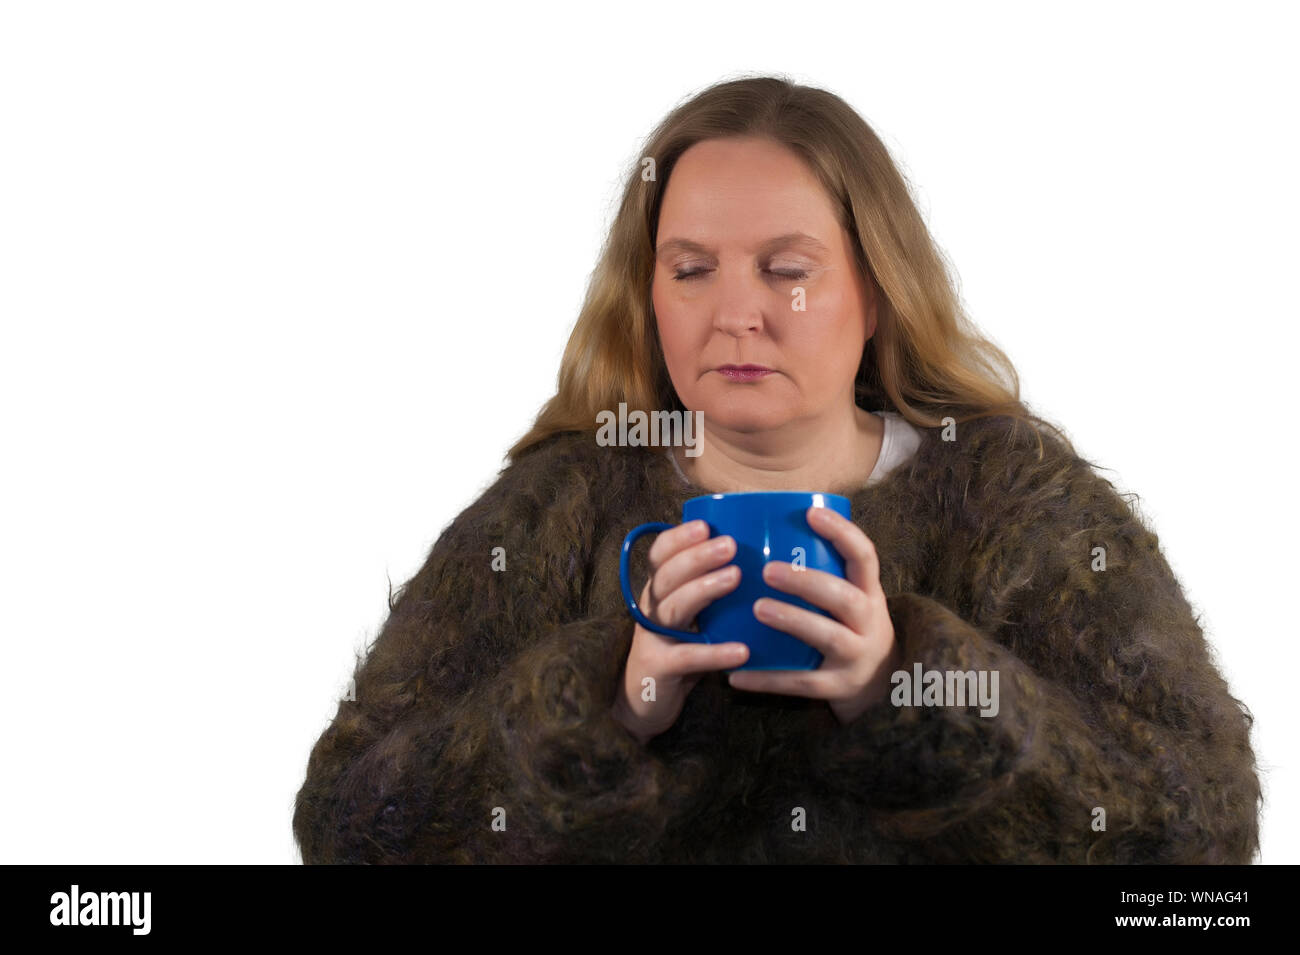 Woman Holding Blue Cup Against White Background Stock Photo